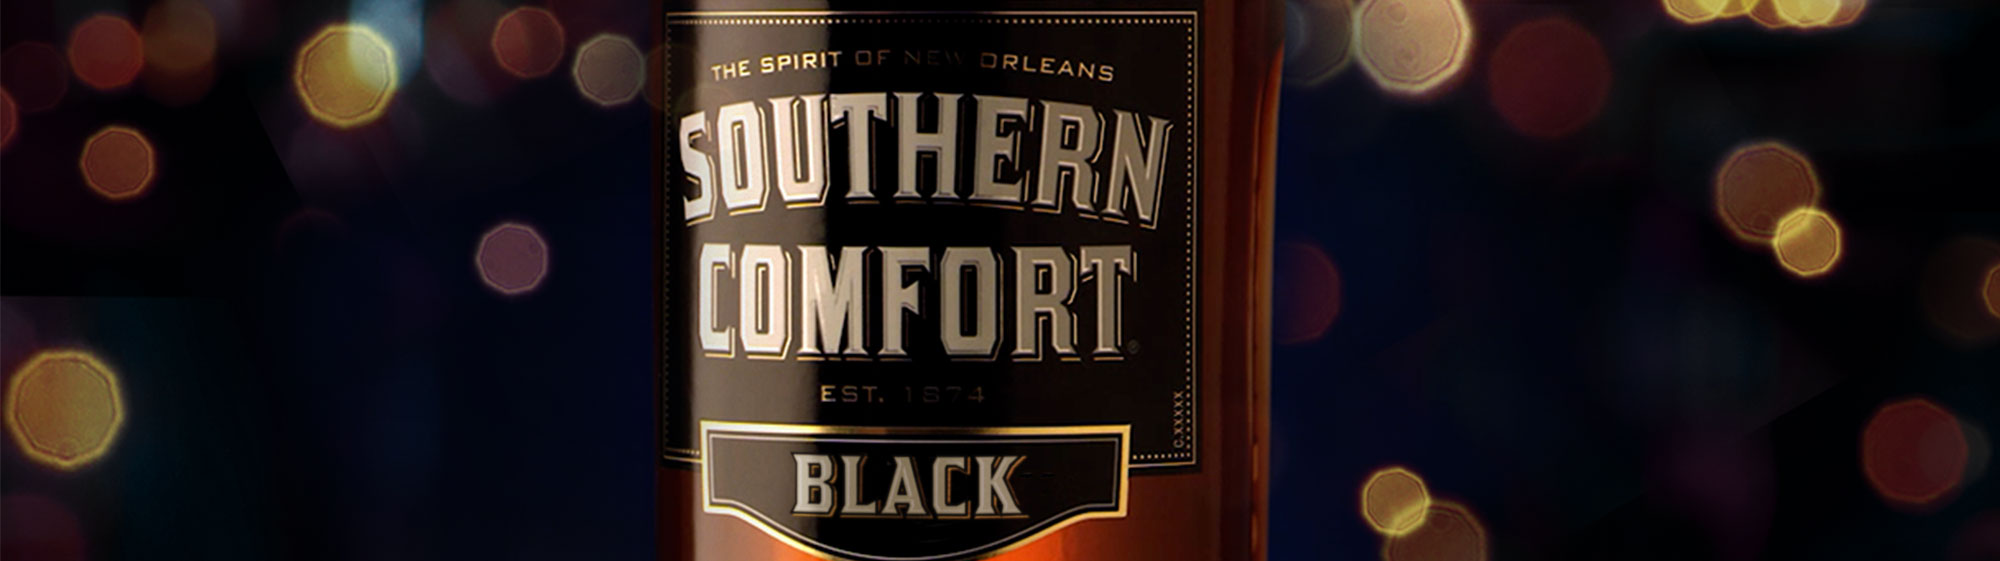 Southern comfort black secondary